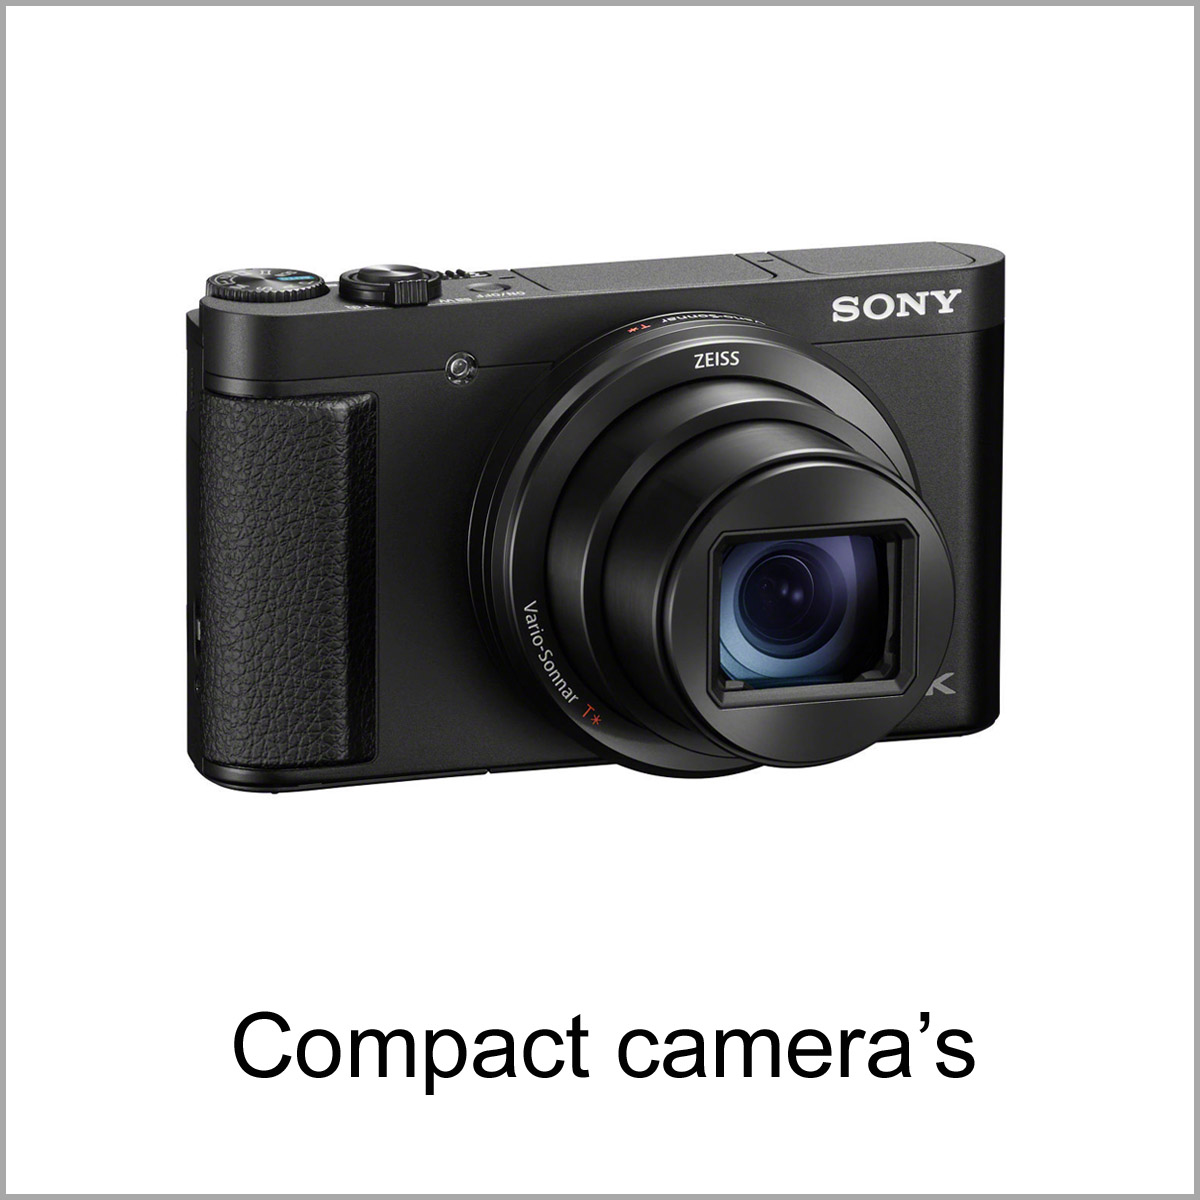 onze Digitale compact camera's